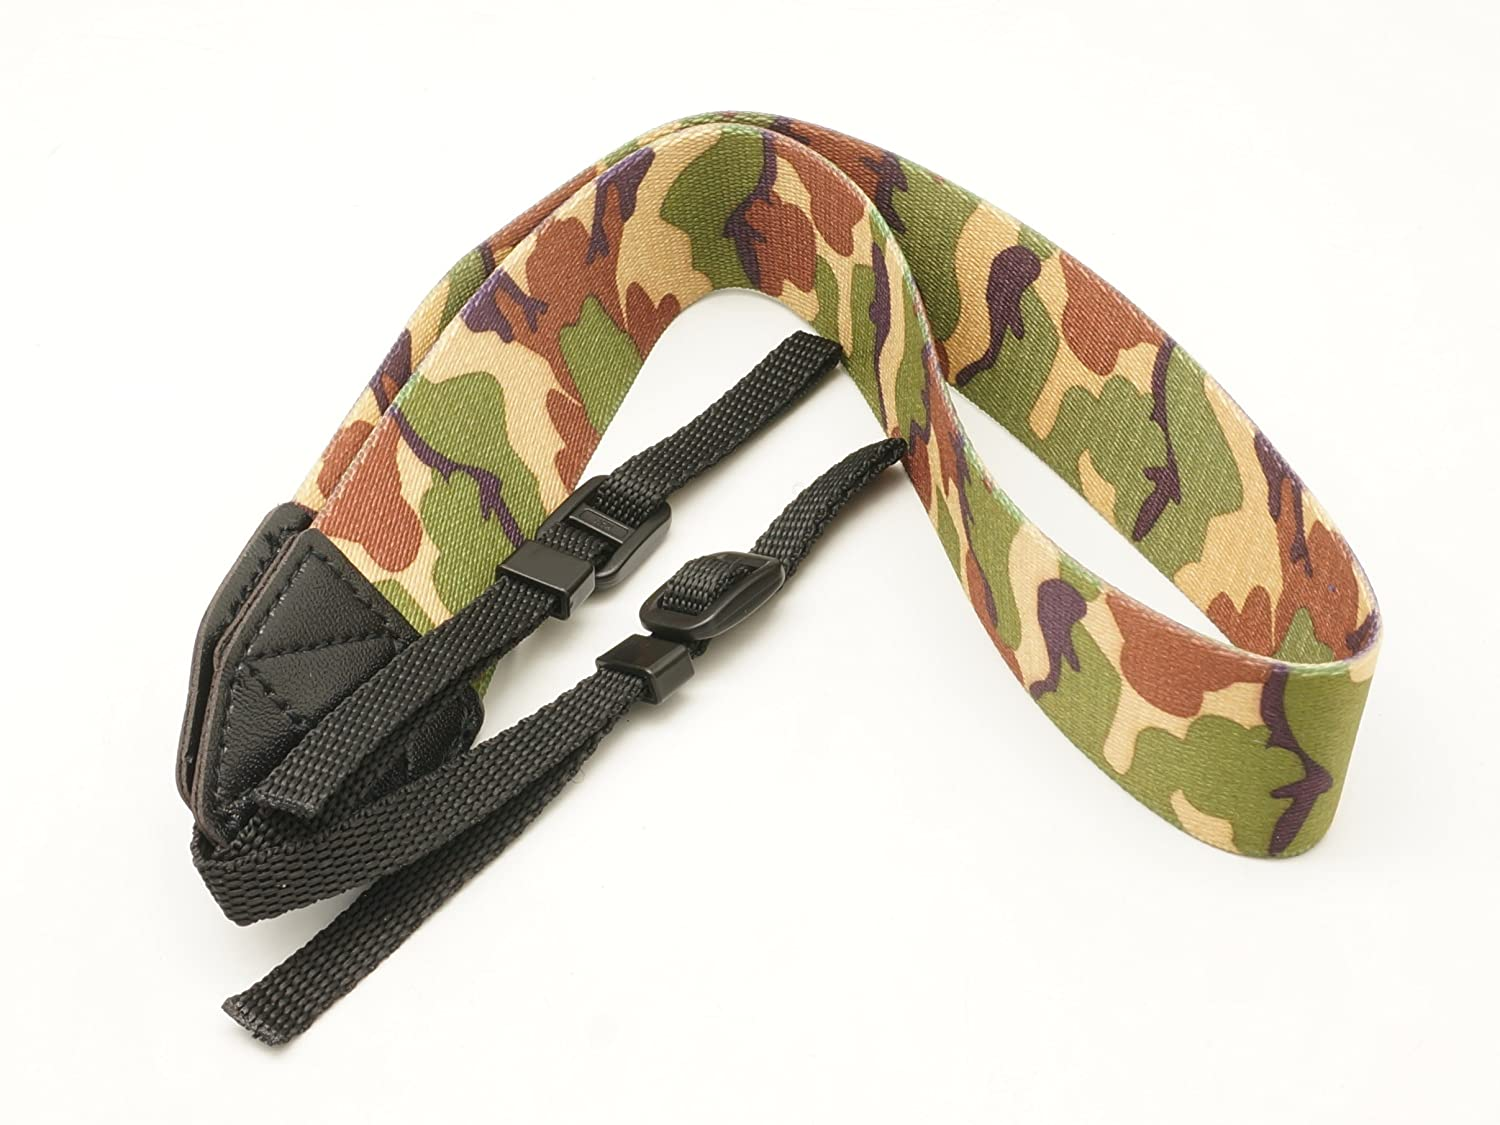 Gadget Place Camouflage Camera Strap for Canon EOS 90D 80D 800D 250D Rebel SL3 / Kiss X10 T7 2000D 4000D 6D Mark II SL2 200D Kiss X9 77D 9000D T7i Kiss X9i 5D Mark IV T6 1300D 80D